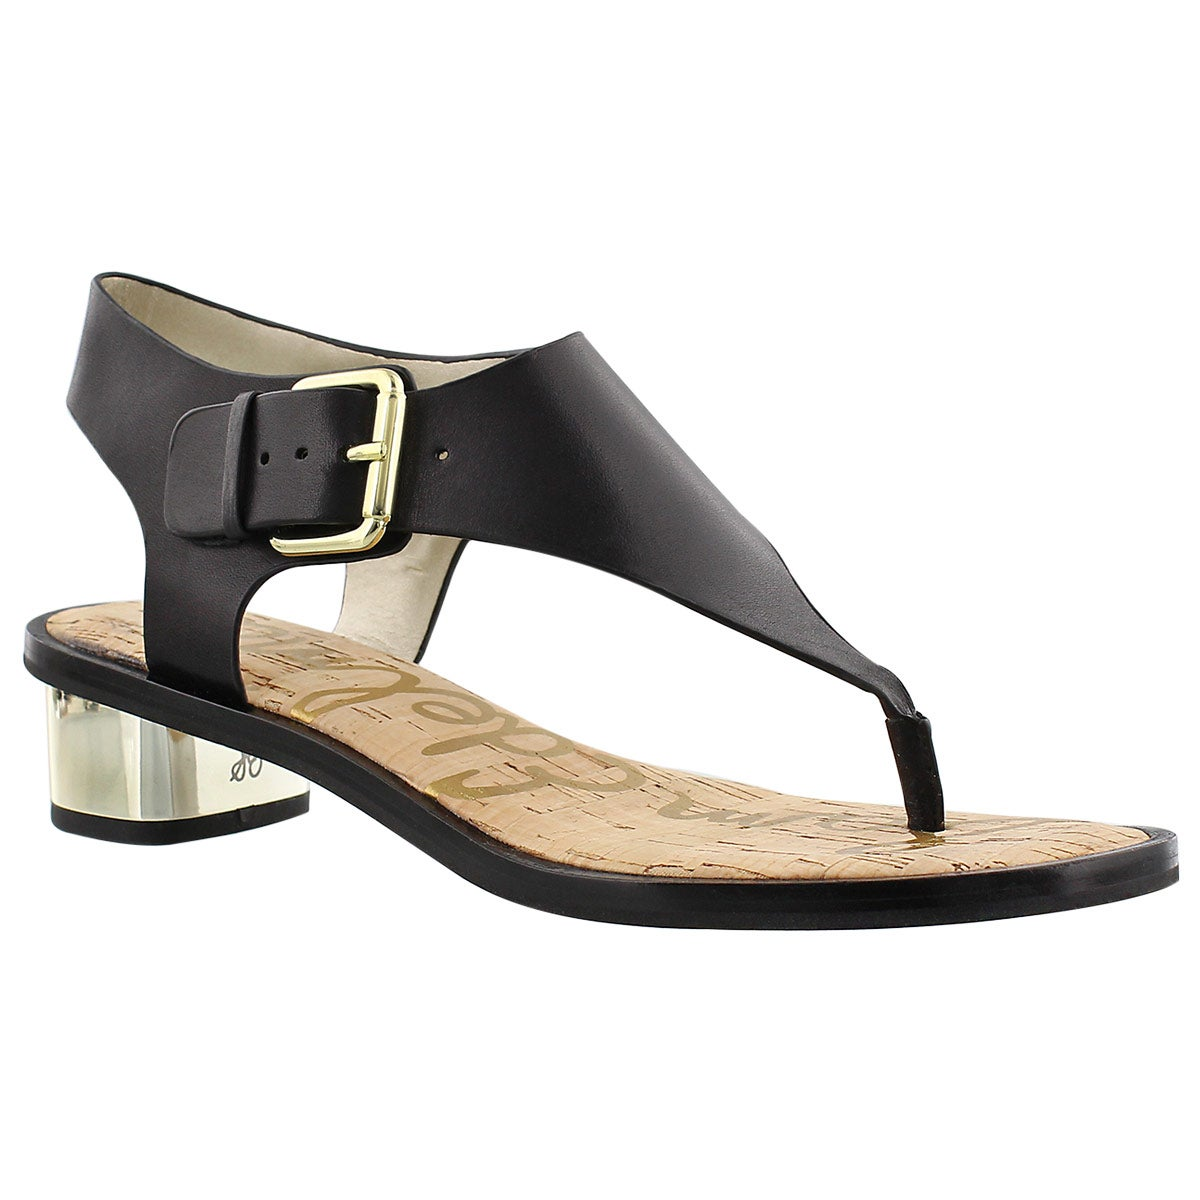 Women's TALLULAH black casual sandals